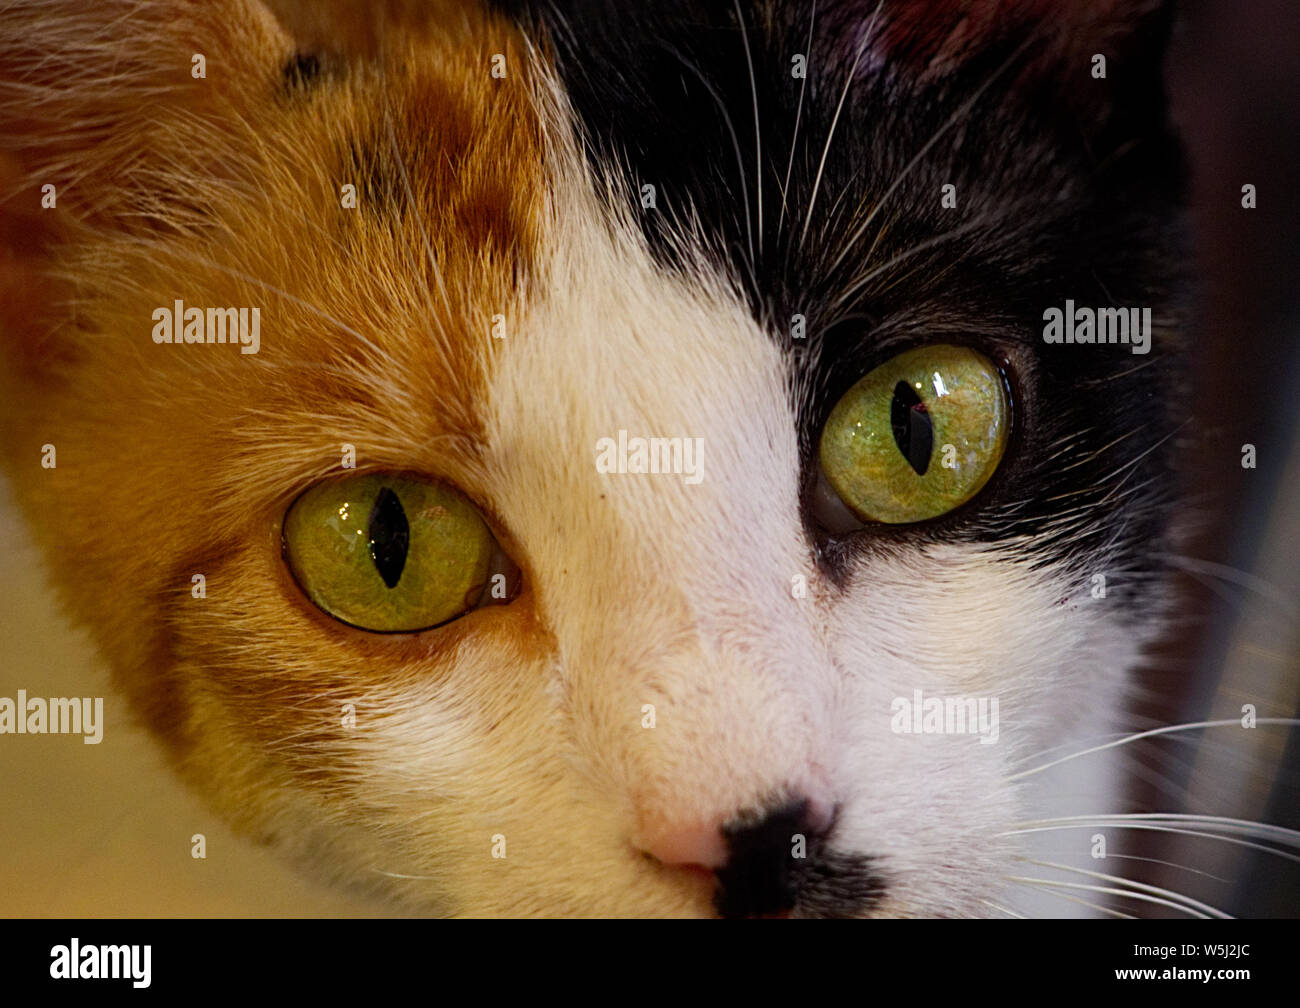 the face of a cat looking at camera Stock Photo